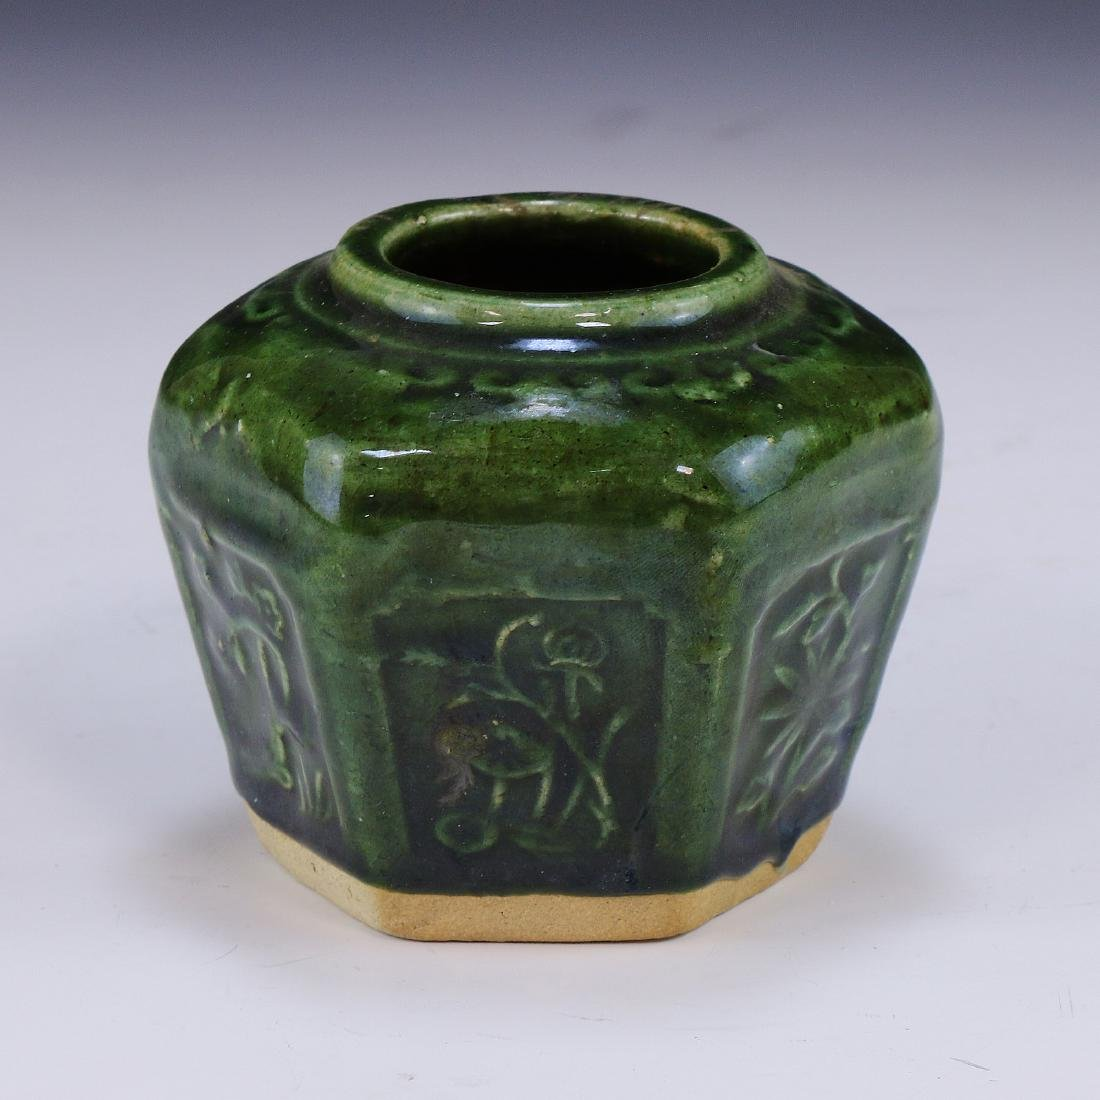 A Chinese Green Glazed Porcelain Jar